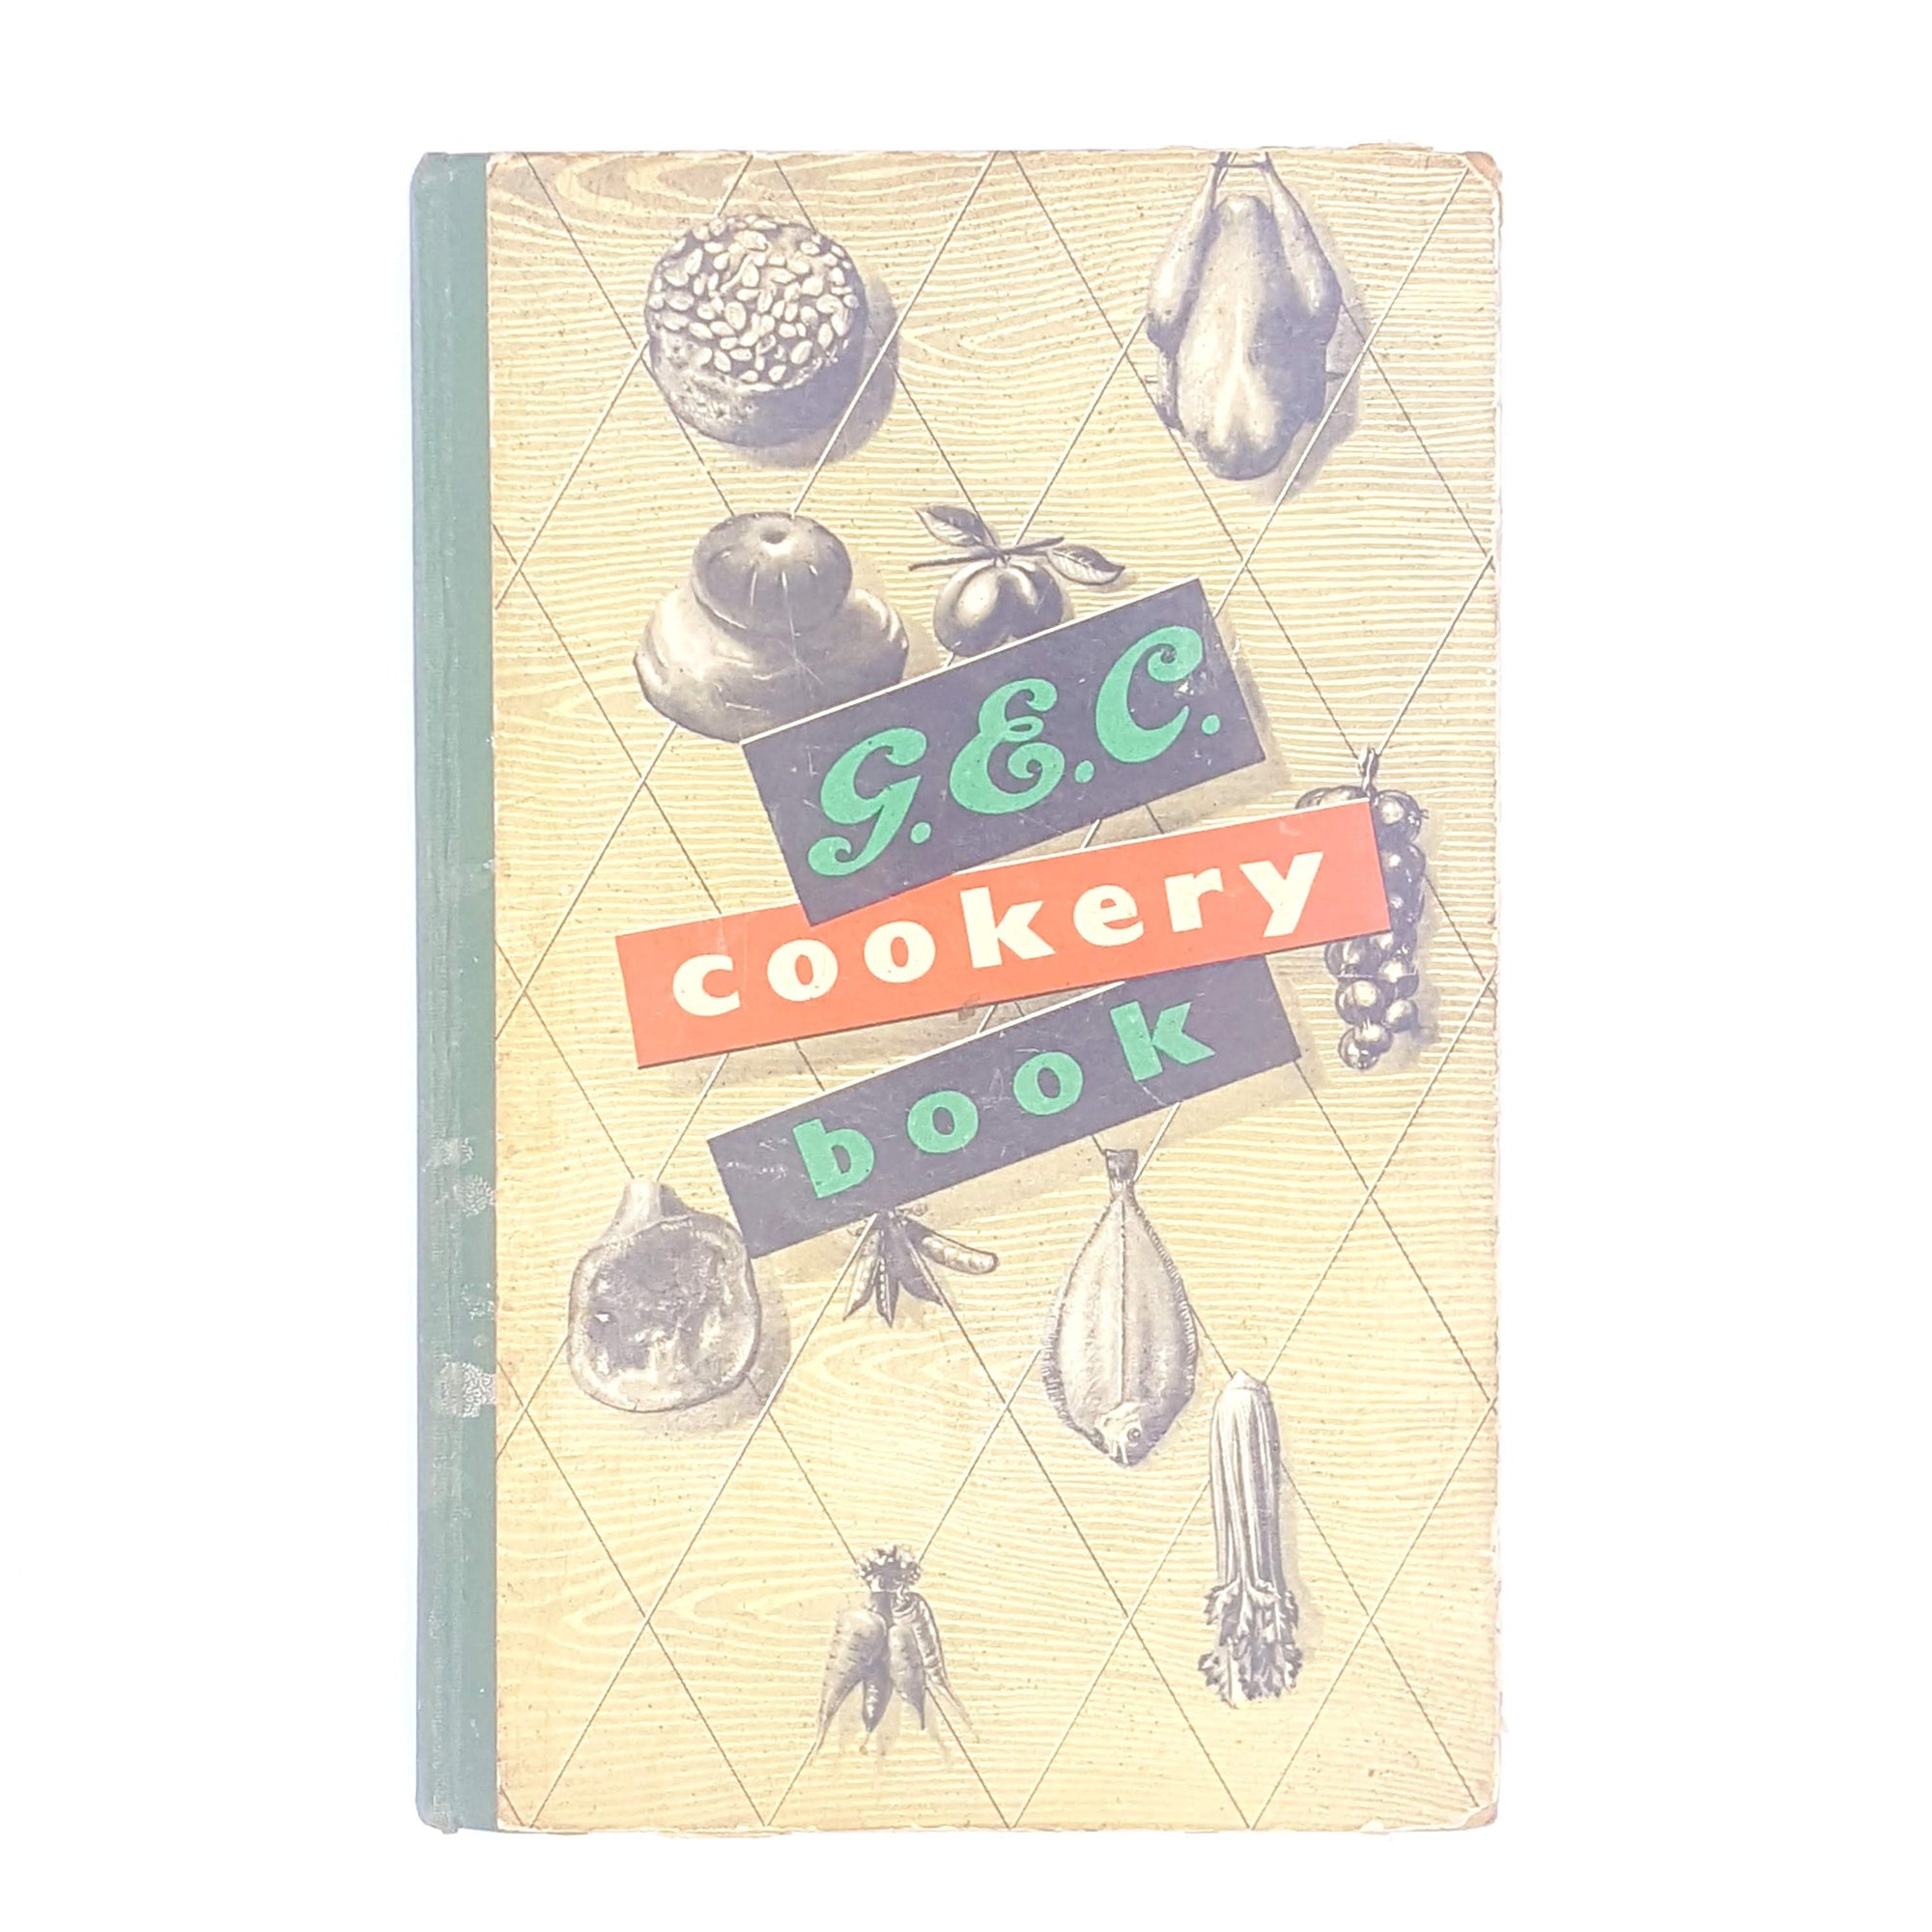 G.EC. Cookery Book by General Electric Company 1951